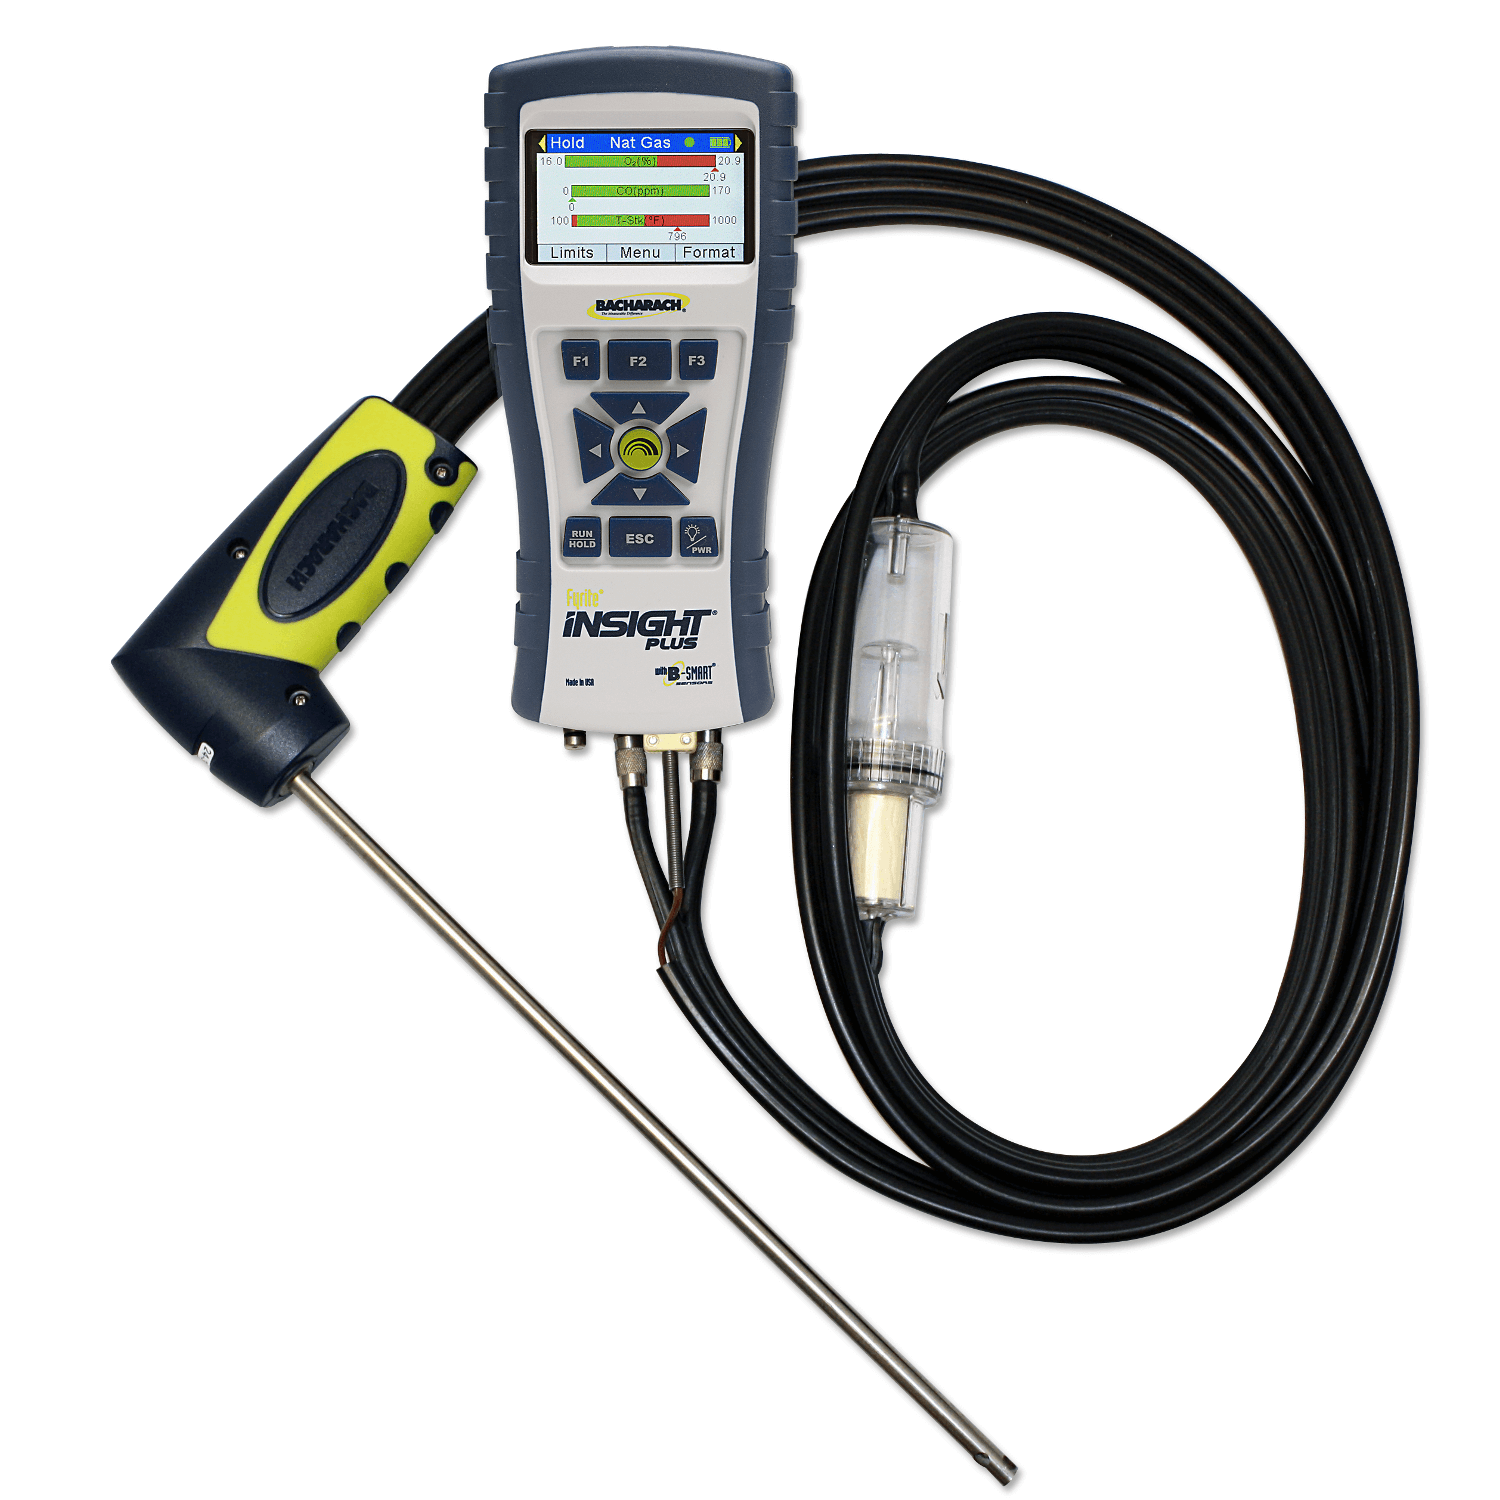 Bacharach 0024-1593 Replacement CO Sensor with NOx Filter for Fyrite Insight Plus Combustion Gas Analyzer